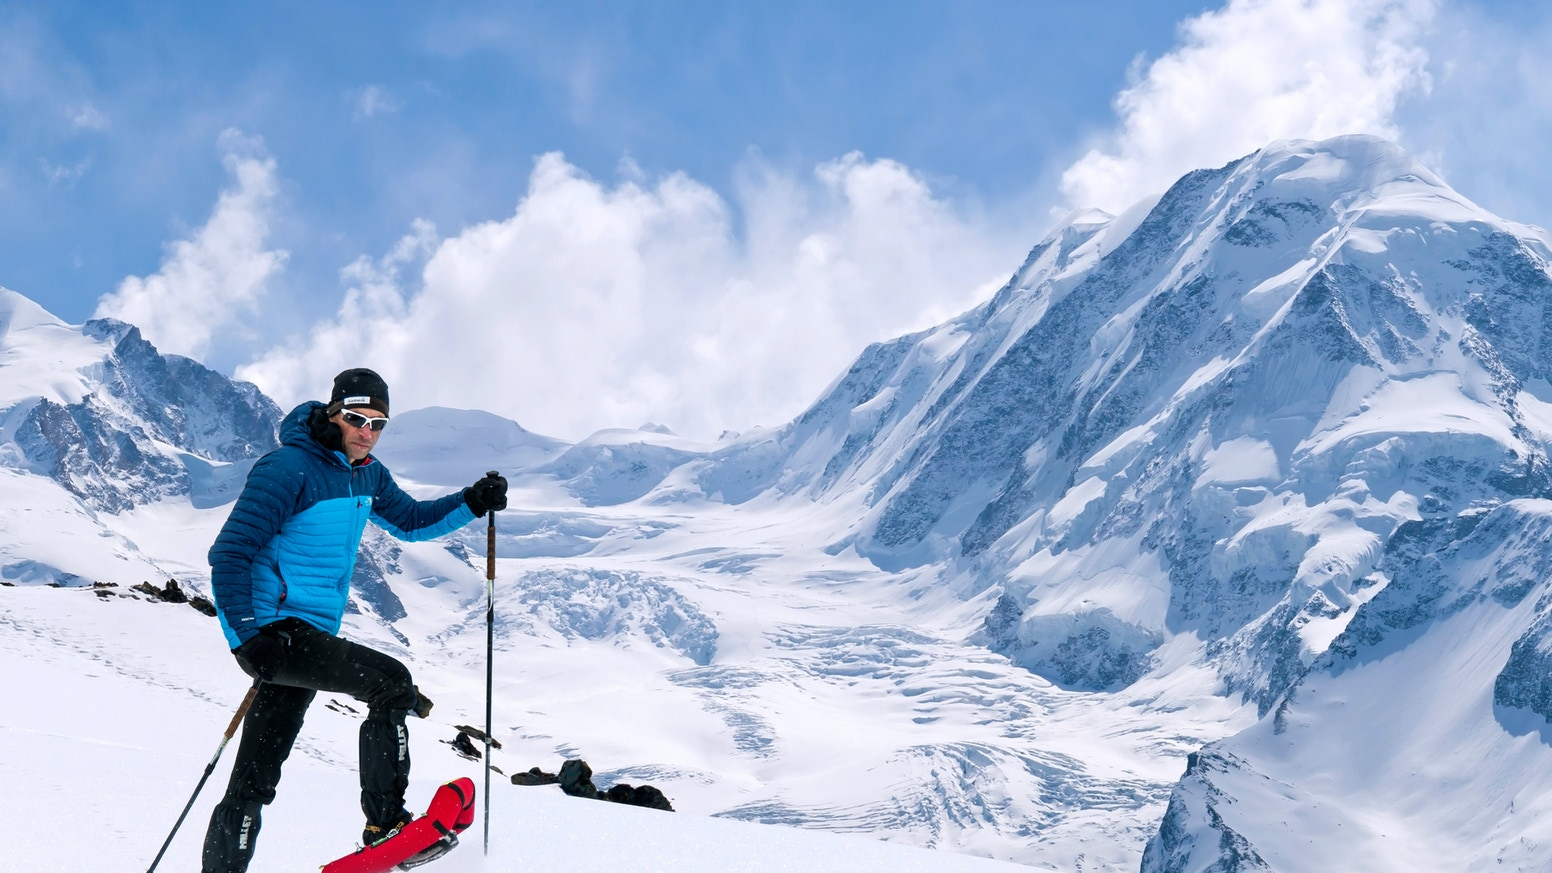 Small Foot help you easily traverse areas of deep snow. Ideal for all snow activities, they are light, durable and compact.